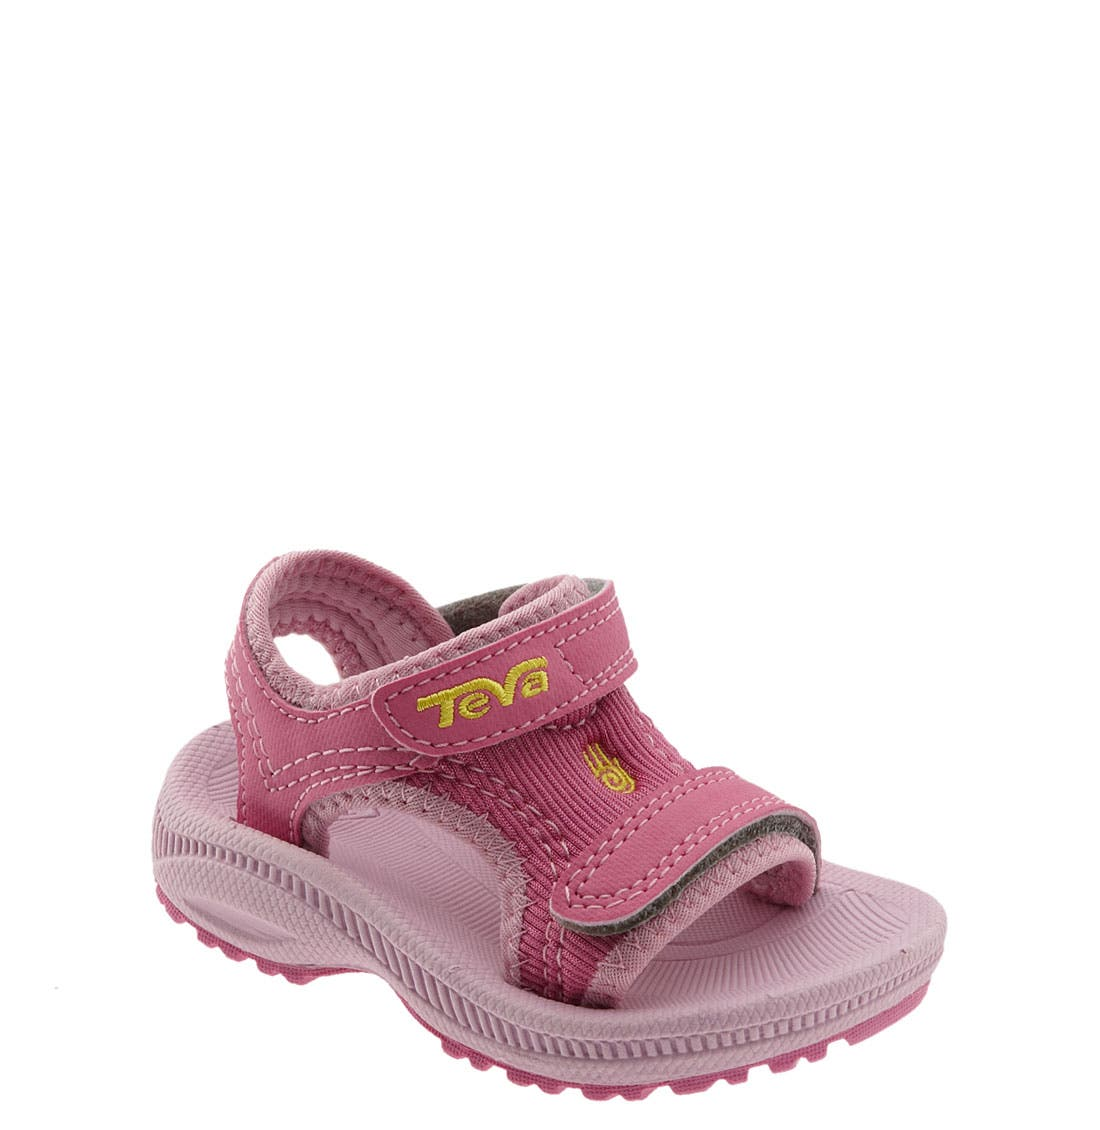 Alternate Image 1 Selected - Teva 'I Psyclone' Athletic Sandal (Baby, Walker & Toddler)